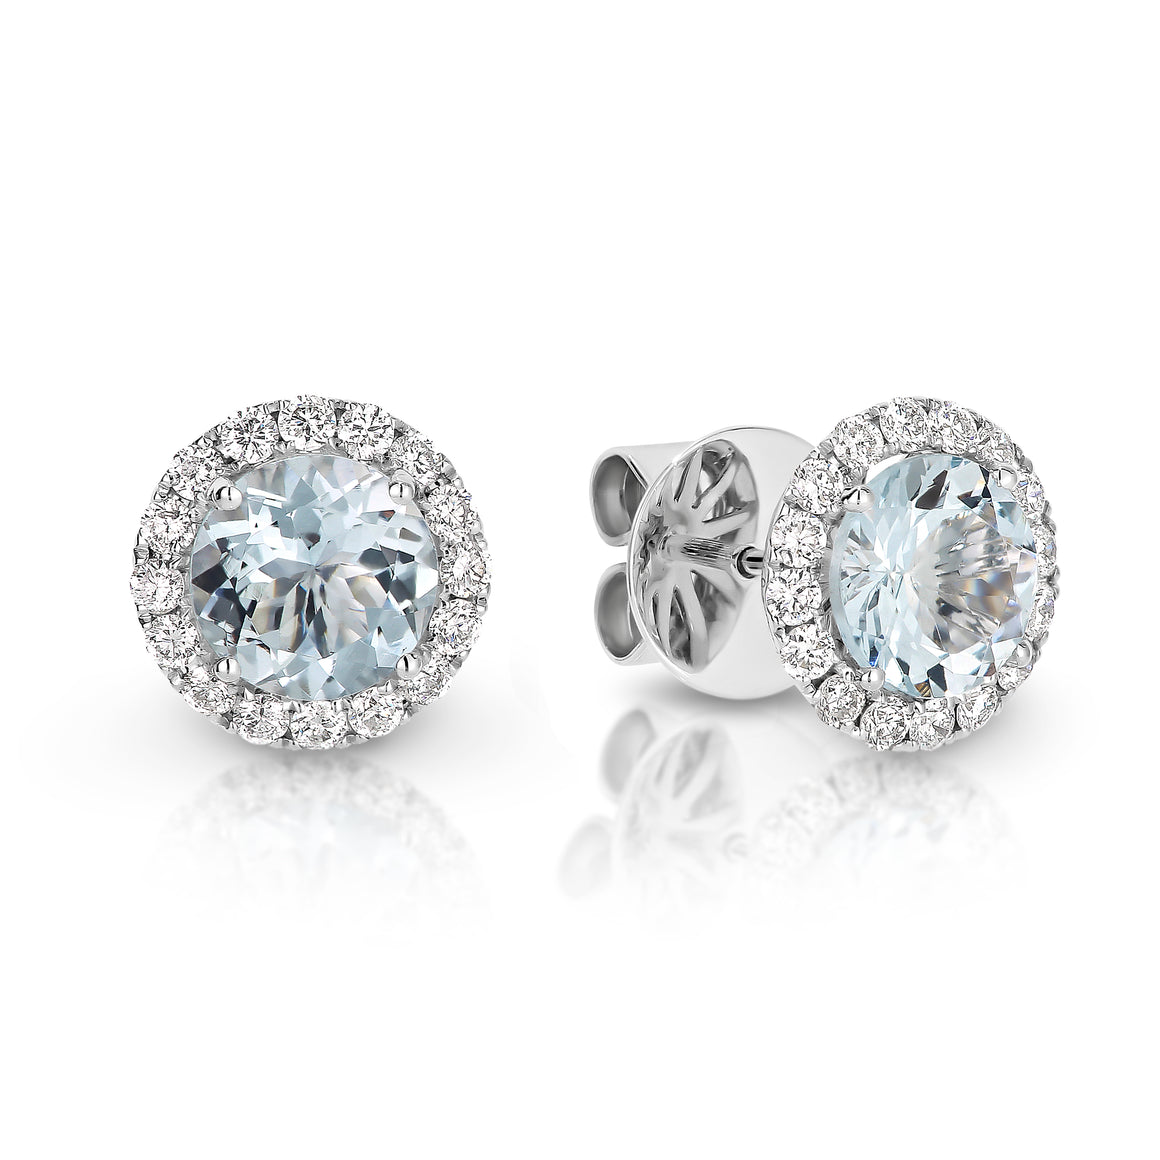 Aquamarine & Diamond 'Ivy' Earrings - Gemma Stone  ABN:51 621 127 866